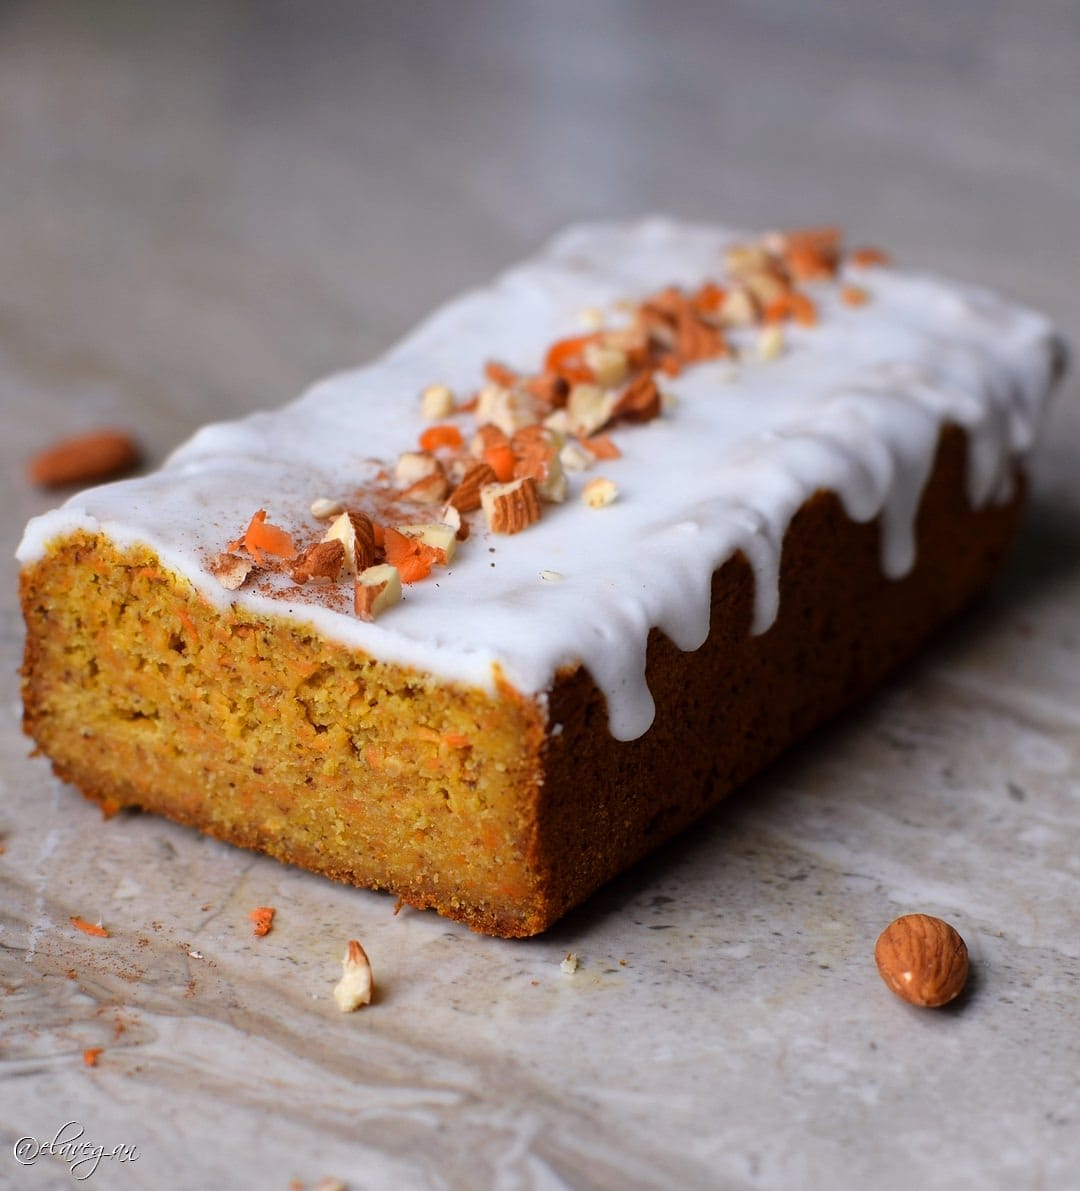 Vegan gluten-free carrot cake with a white sugar-free (keto friendly) frosting